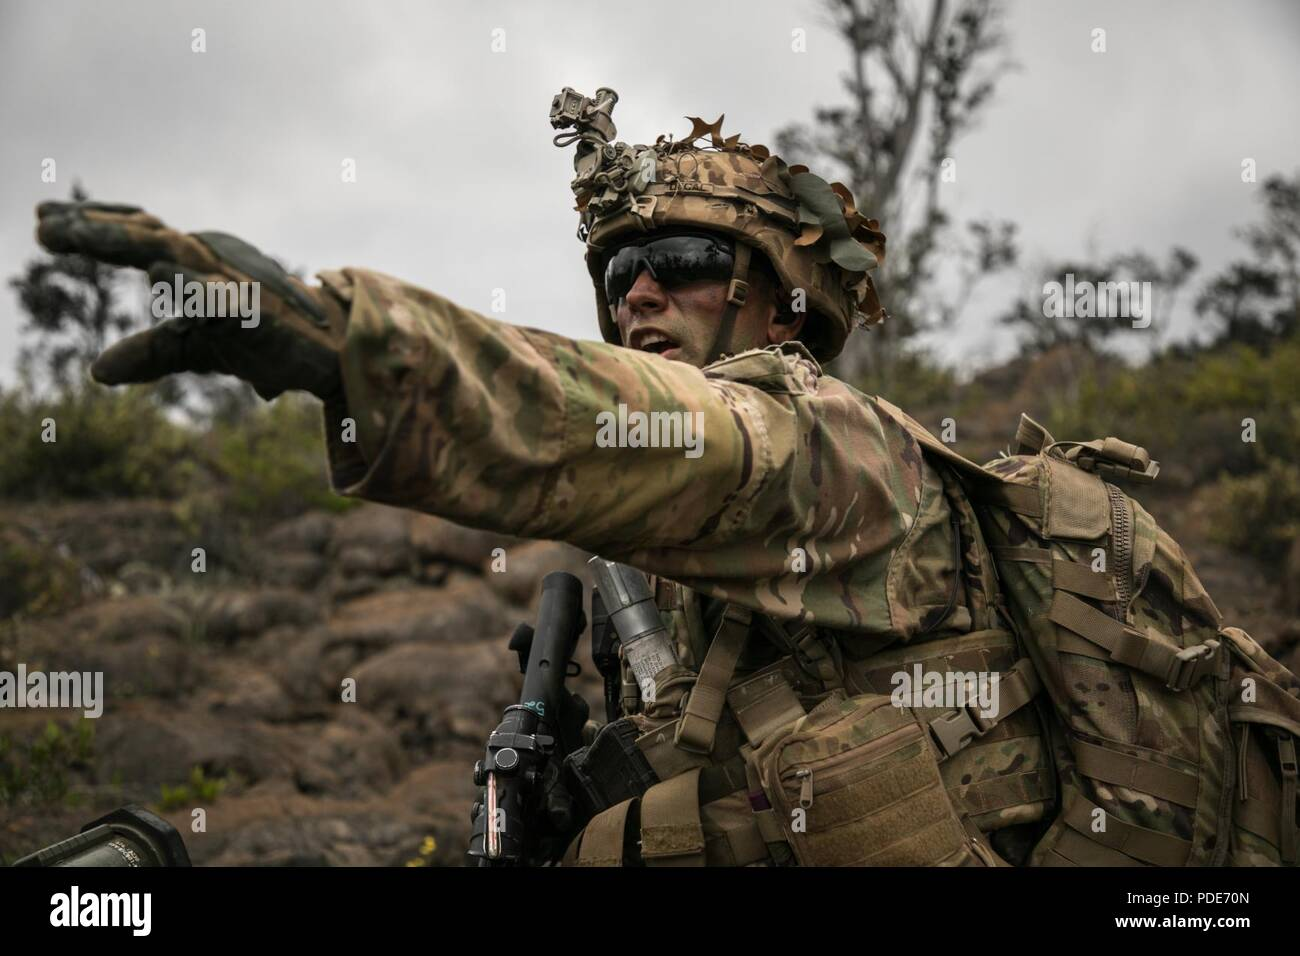 U.S. Army Trooper assigned to 2nd Squadron, 14th Calvary Regiment, 2nd Infantry Brigade Combat Team, 25th Infantry Division signals a movement direction during a Combined Arms Live Fire Exercise (CALFEX) at Pohakuloa Training Area, Hawaii, May 15, 2018. The CALFEX utilizes all the enablers available to the unit in order to increase interoperability, concentrate combat power and mass effects on the objective. - Stock Image